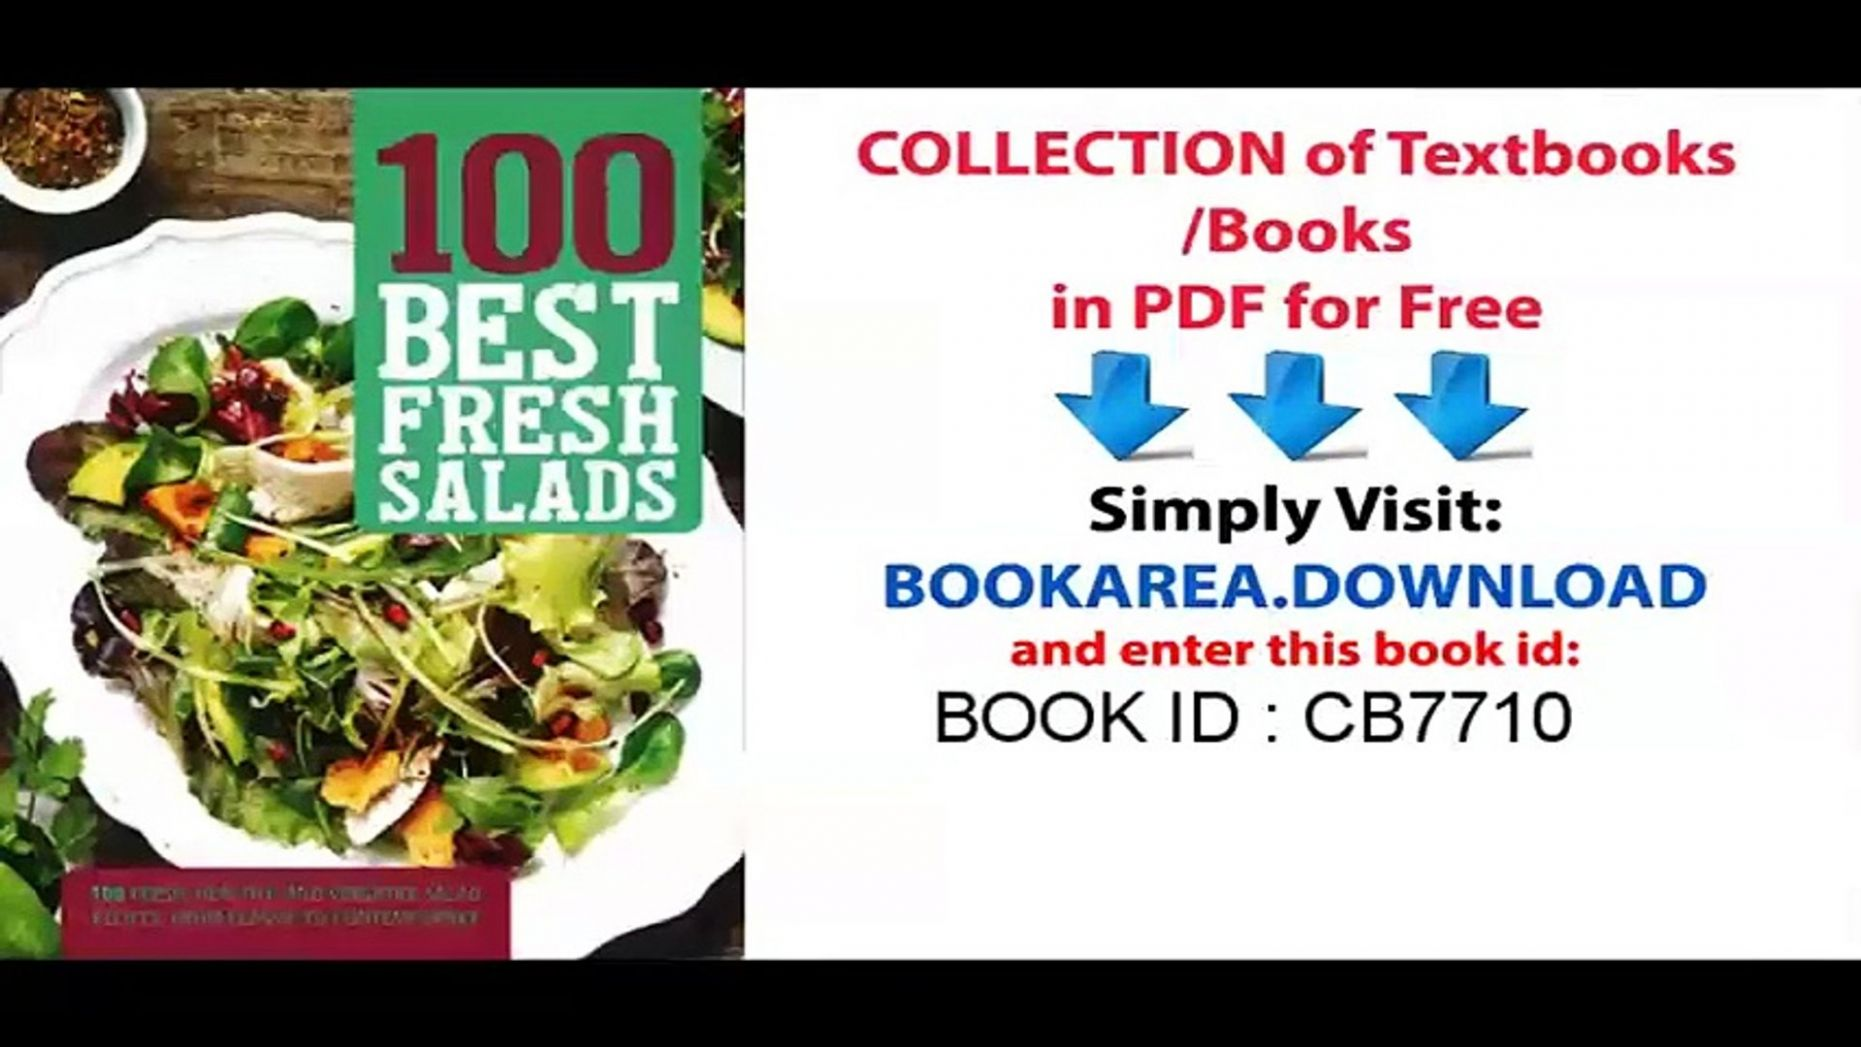 8 Best Fresh Salads - Salad Recipes Pdf Free Download